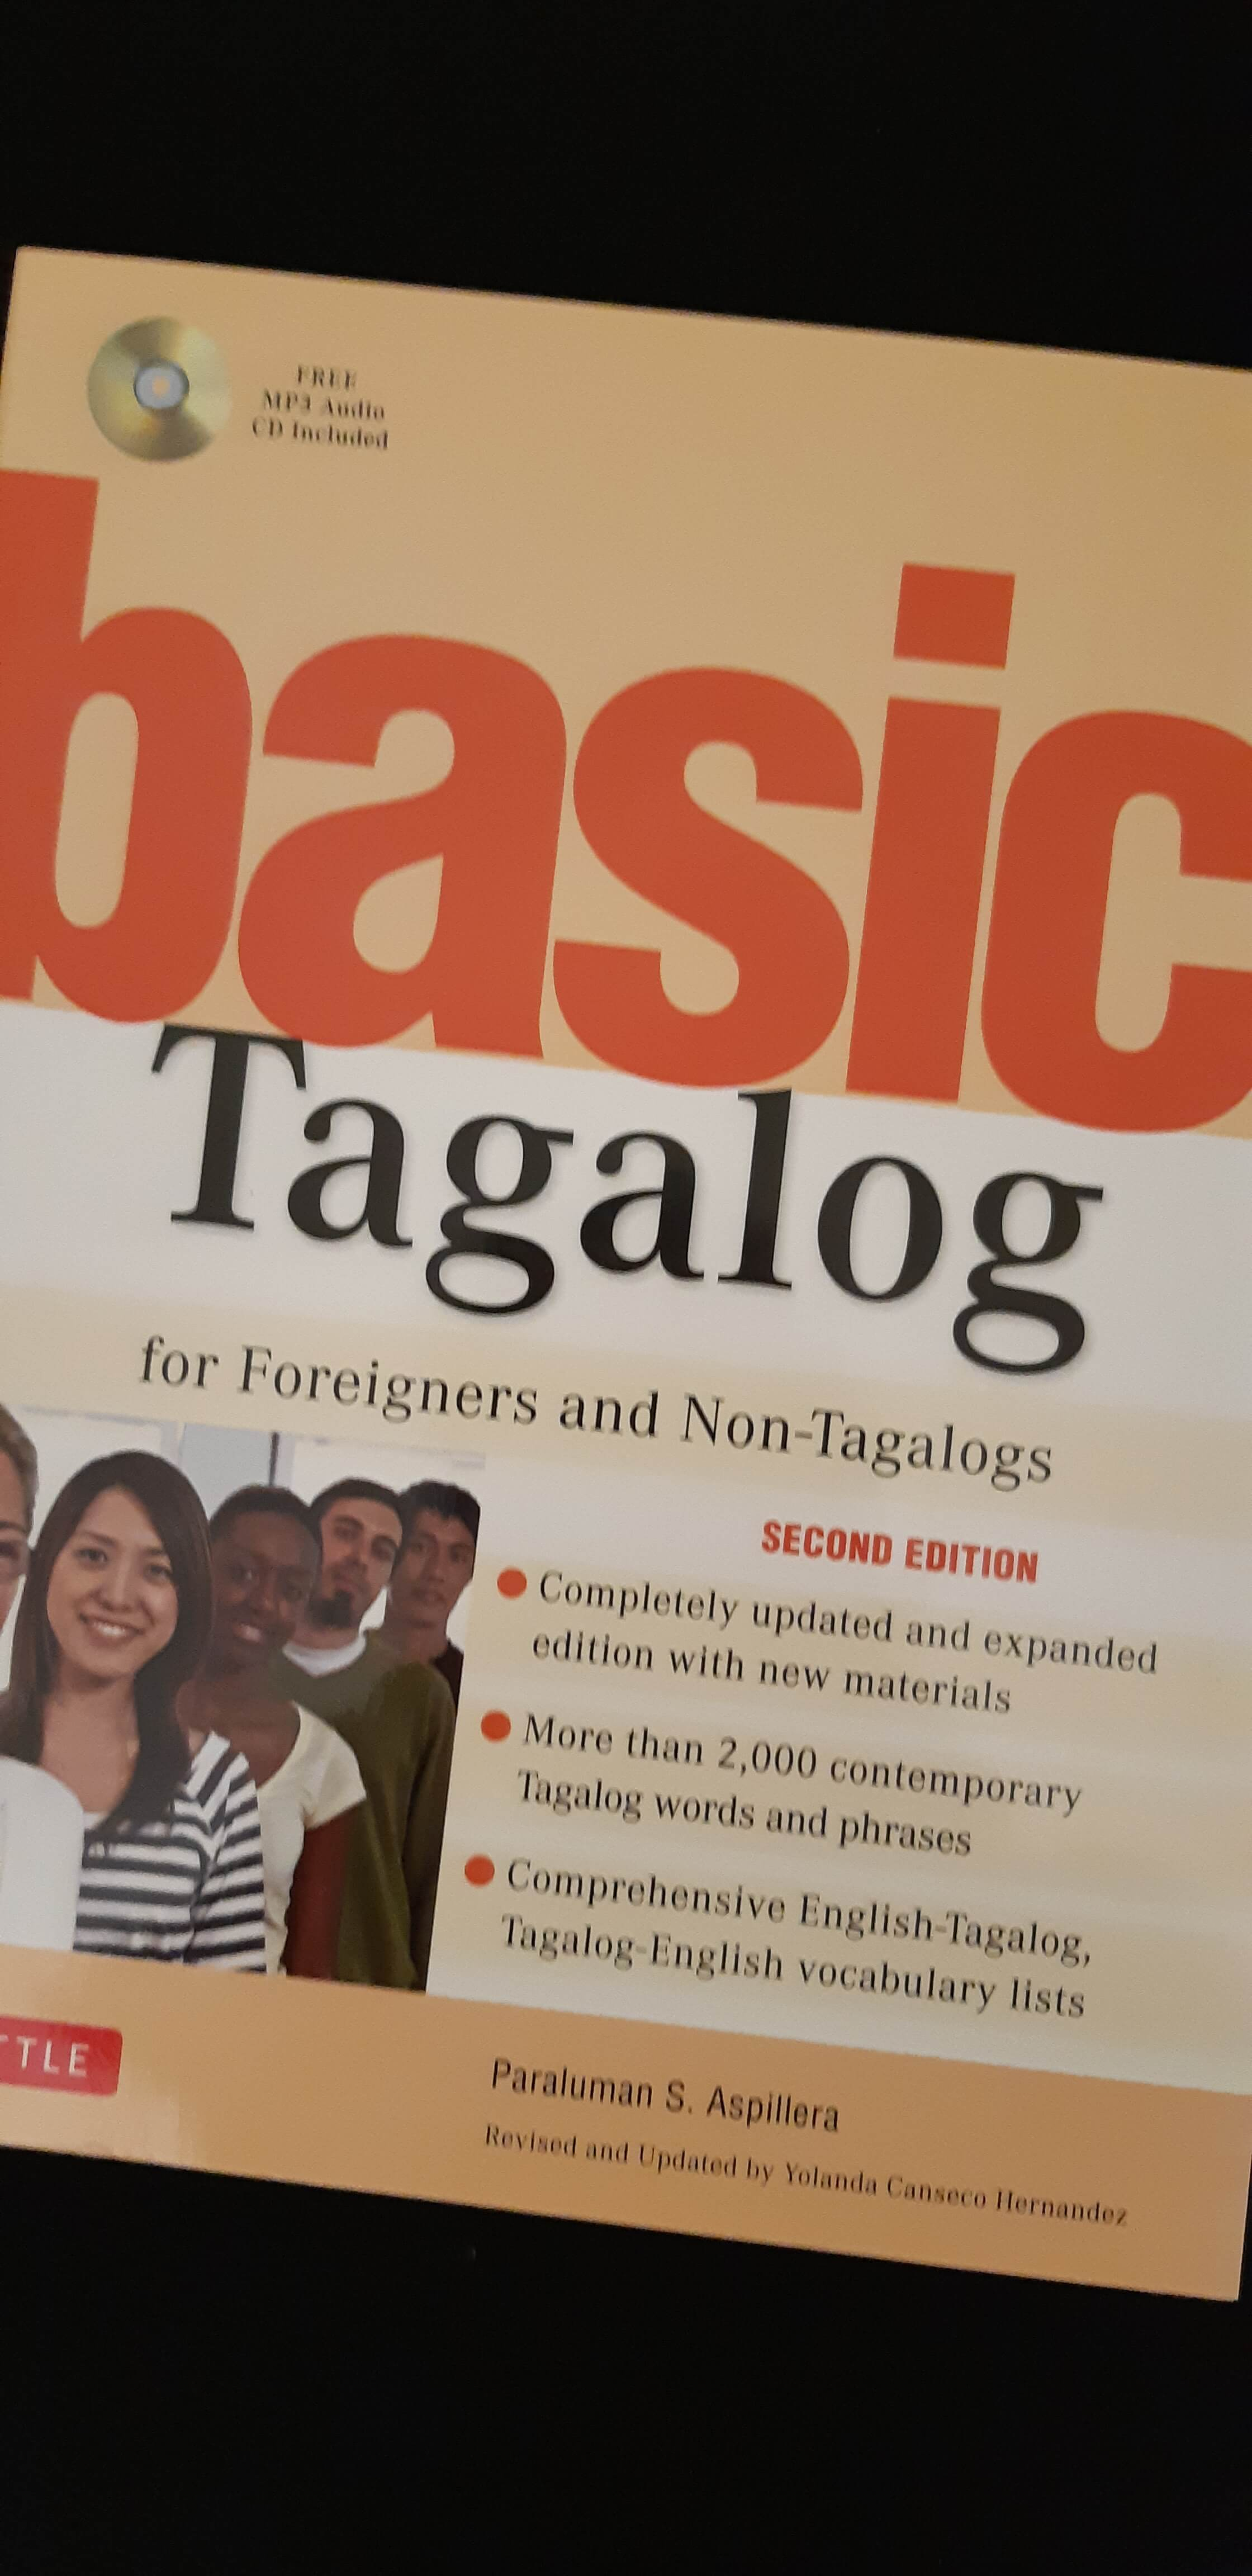 Jacket cover of a Tagalog workbook.